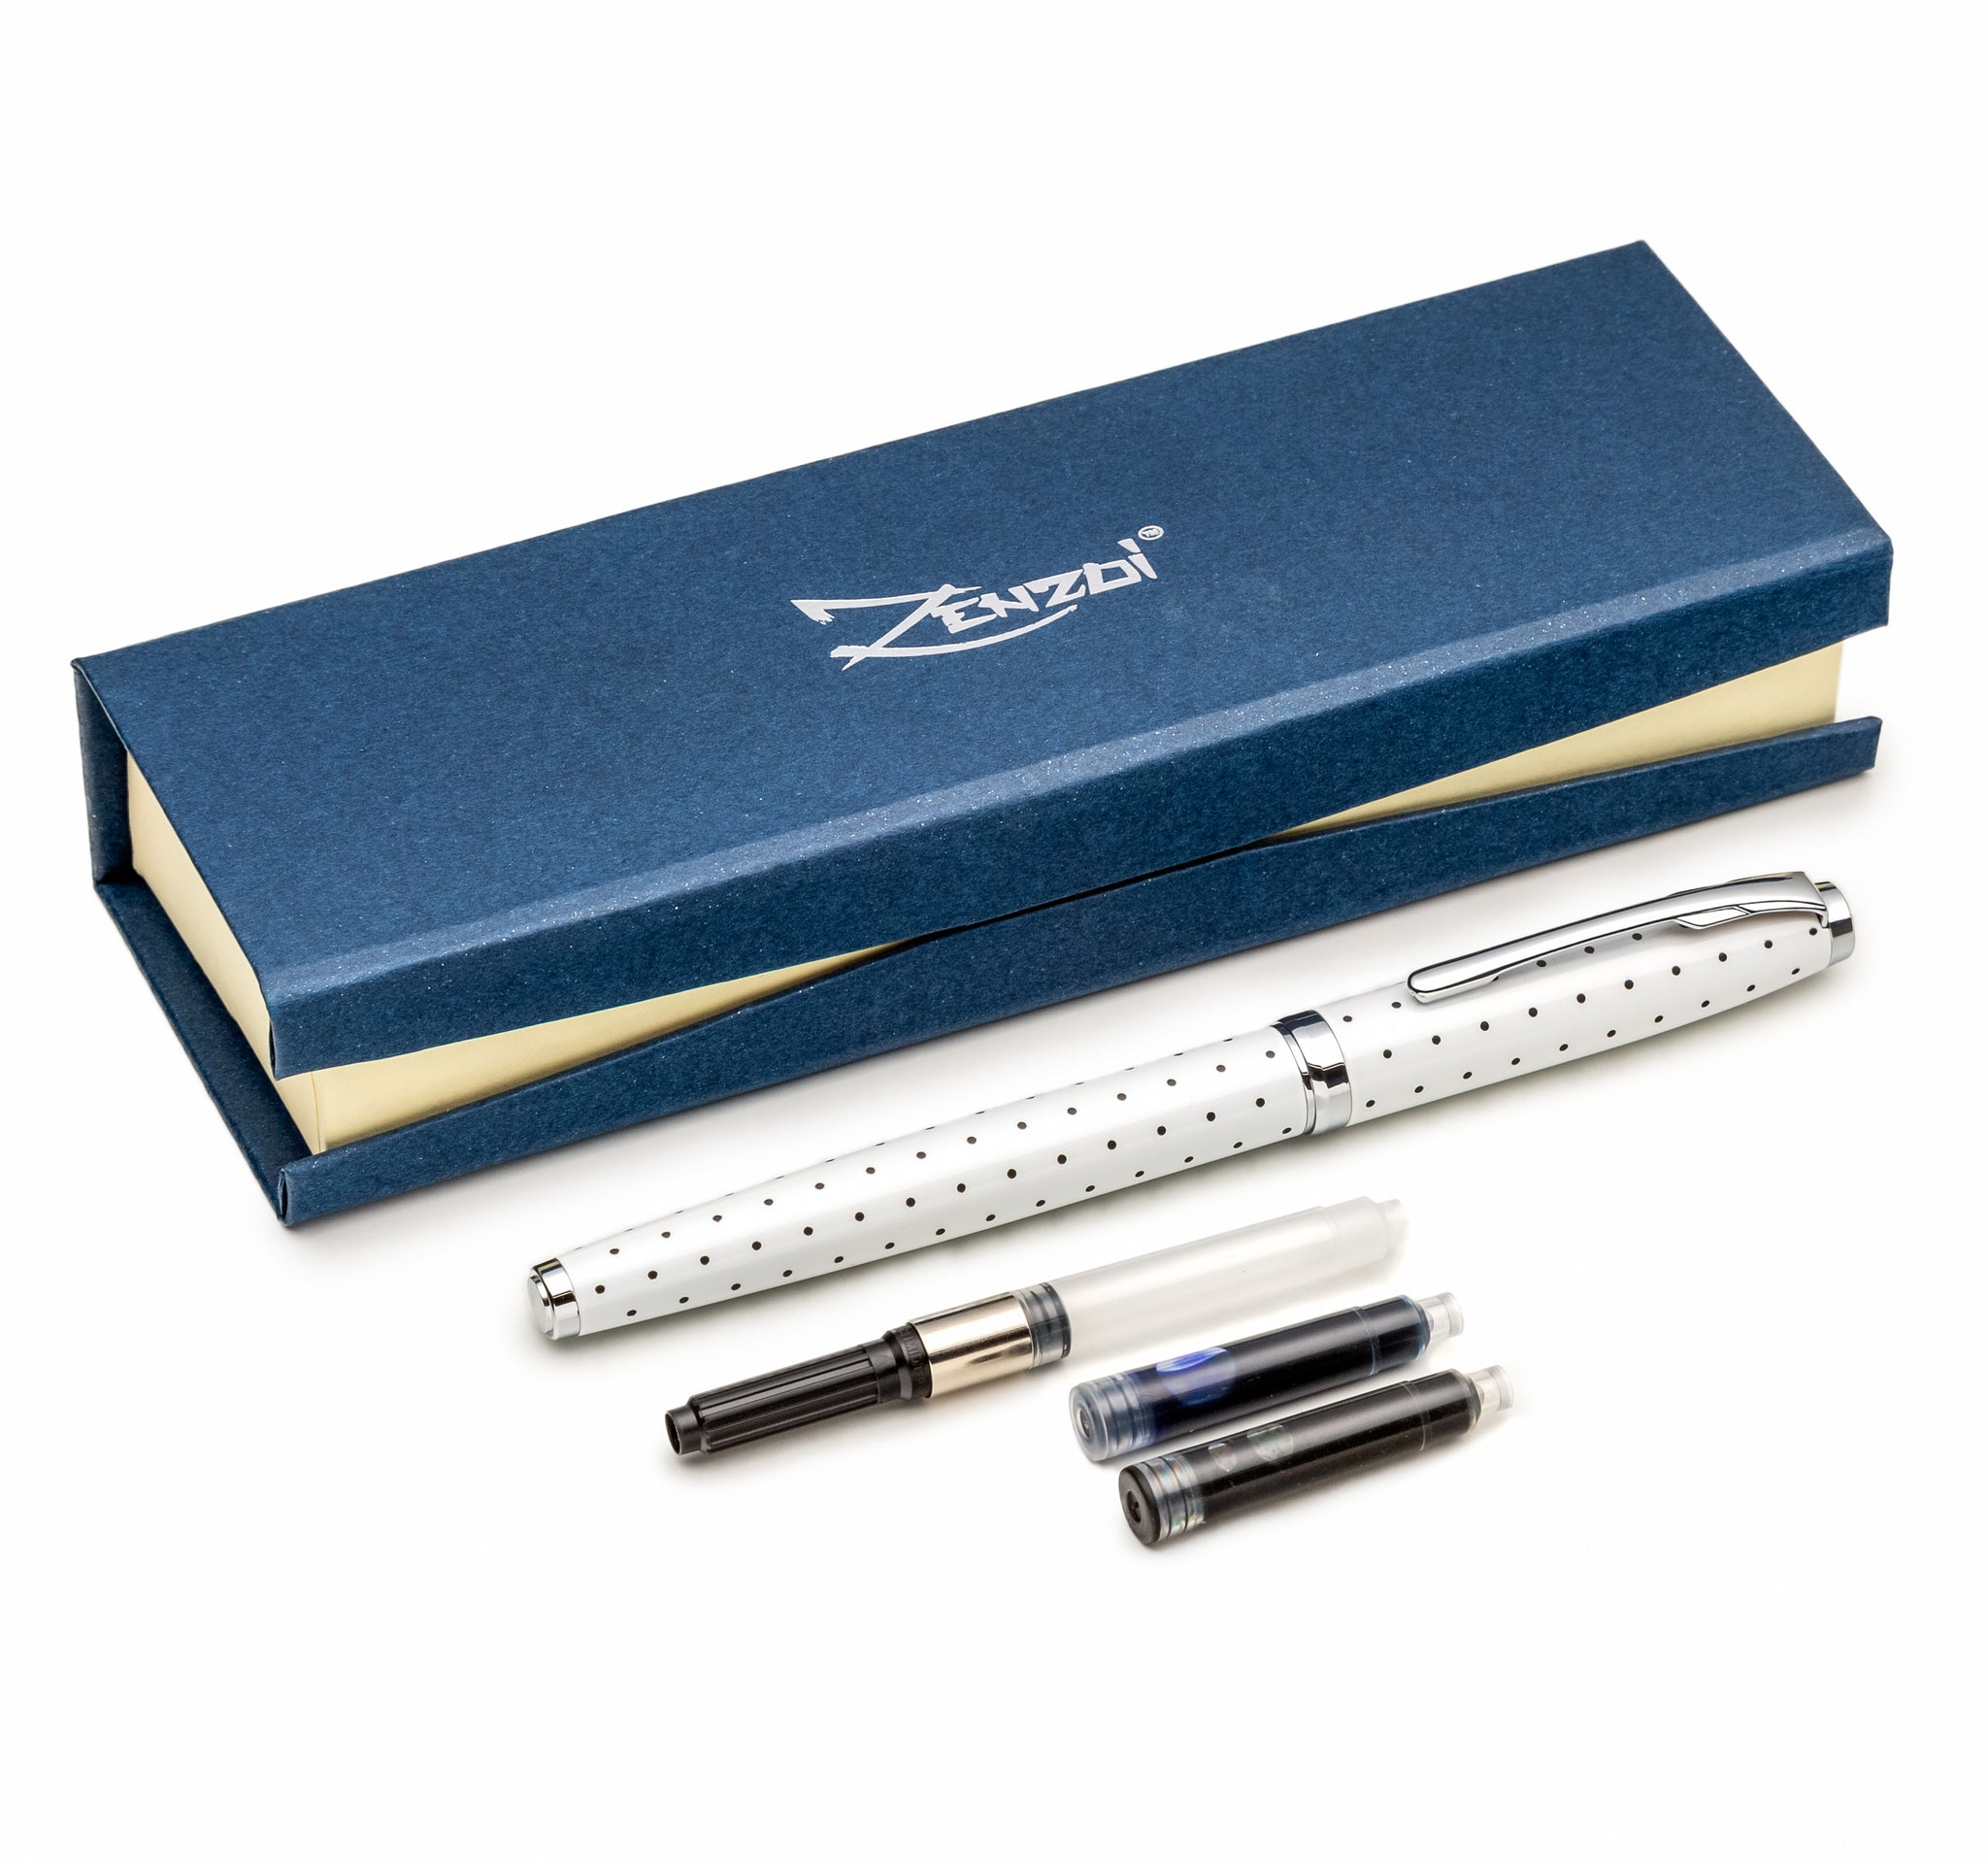 White Dotted Fountain Pen Set with Schmidt Fine Nib - Gift Pen Set (1 Ink Converter + 2 Ink Refills)